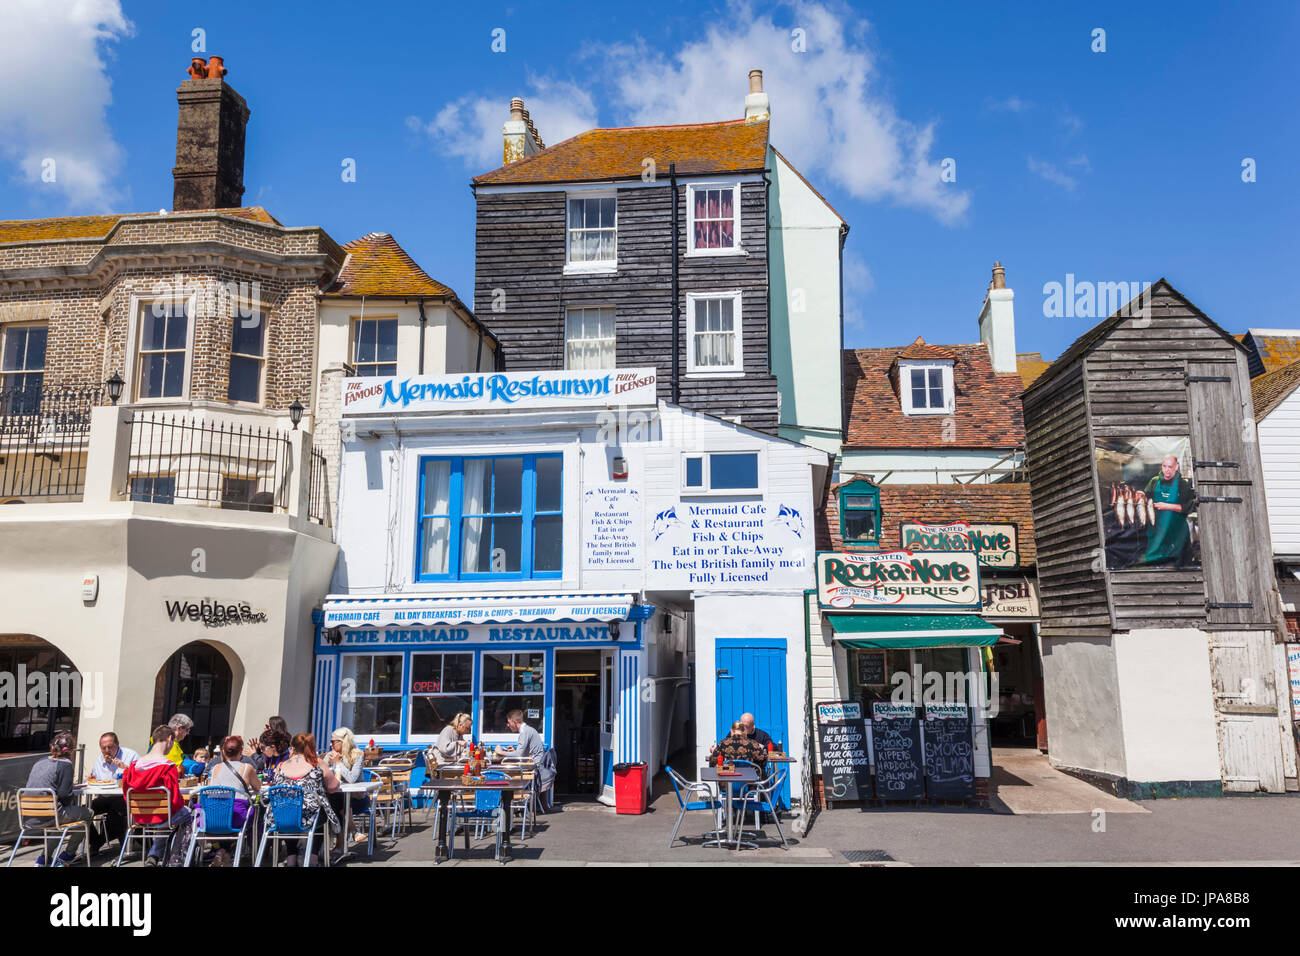 England, East Sussex, Hastings, Old Town, Seafood Restaurant - Stock Image